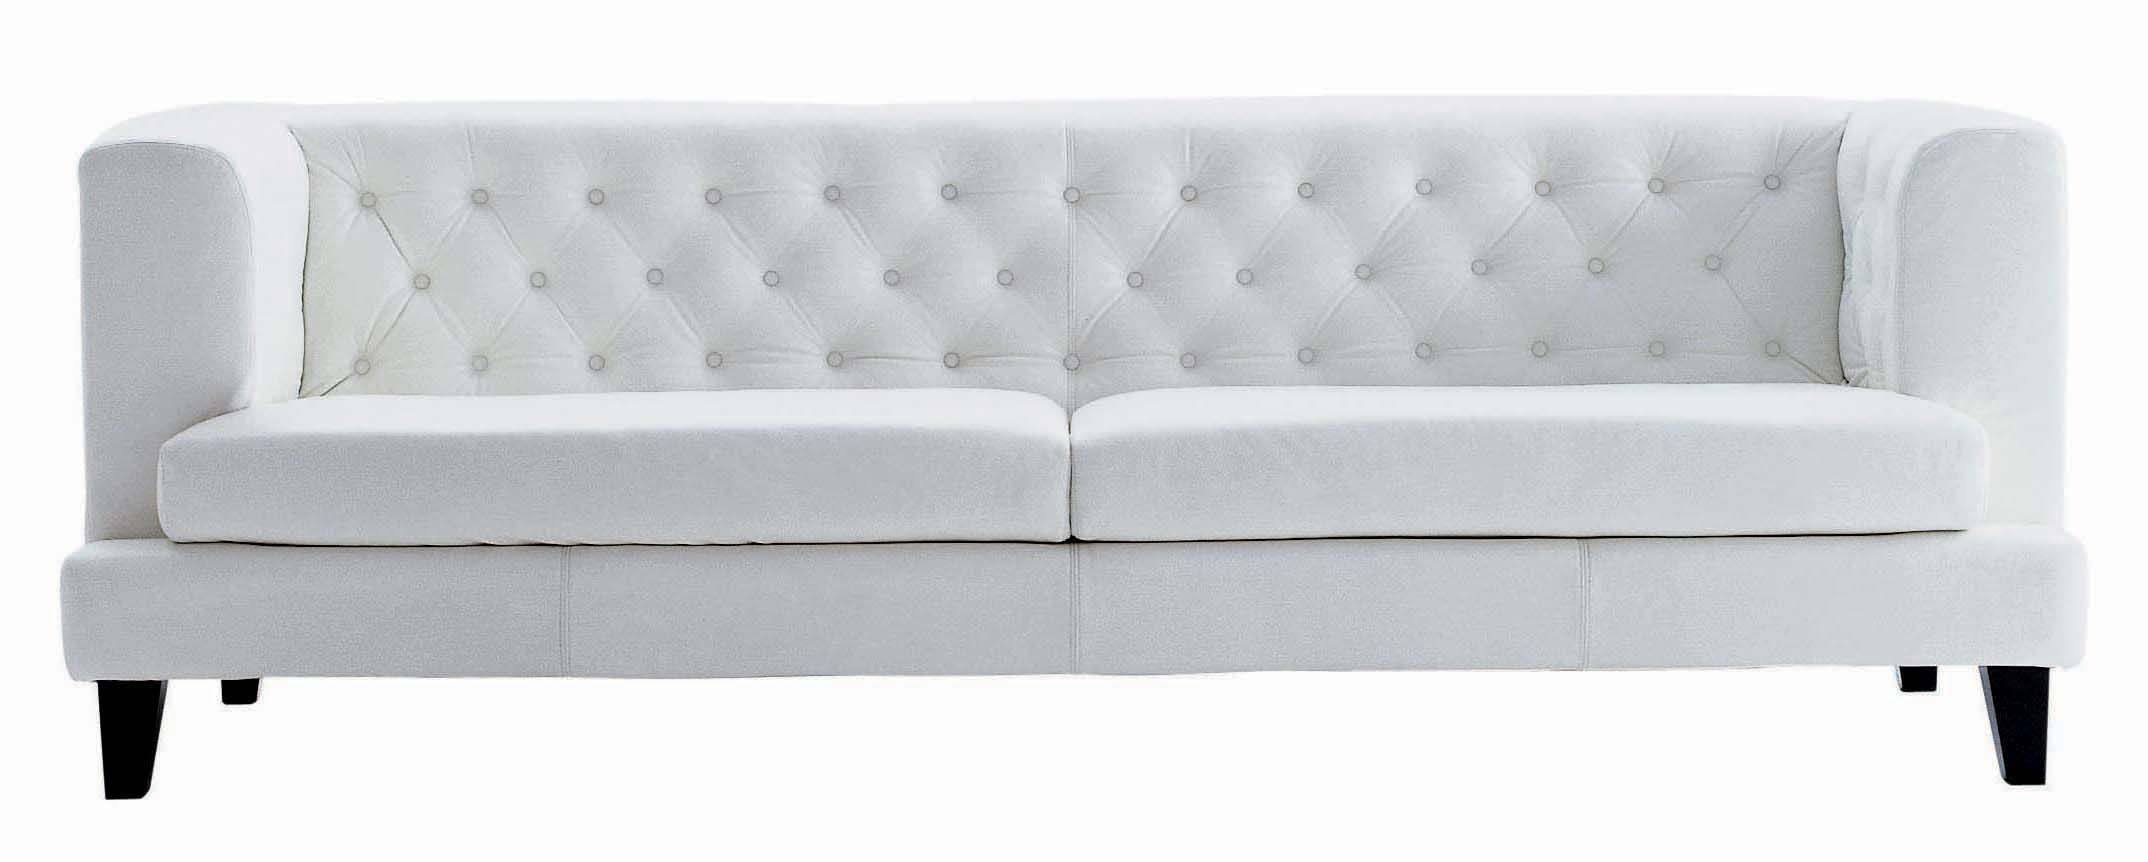 Furniture - Sofas - Hall Straight sofa - 3 seats - Leather version by Driade - White - Leather, Wood